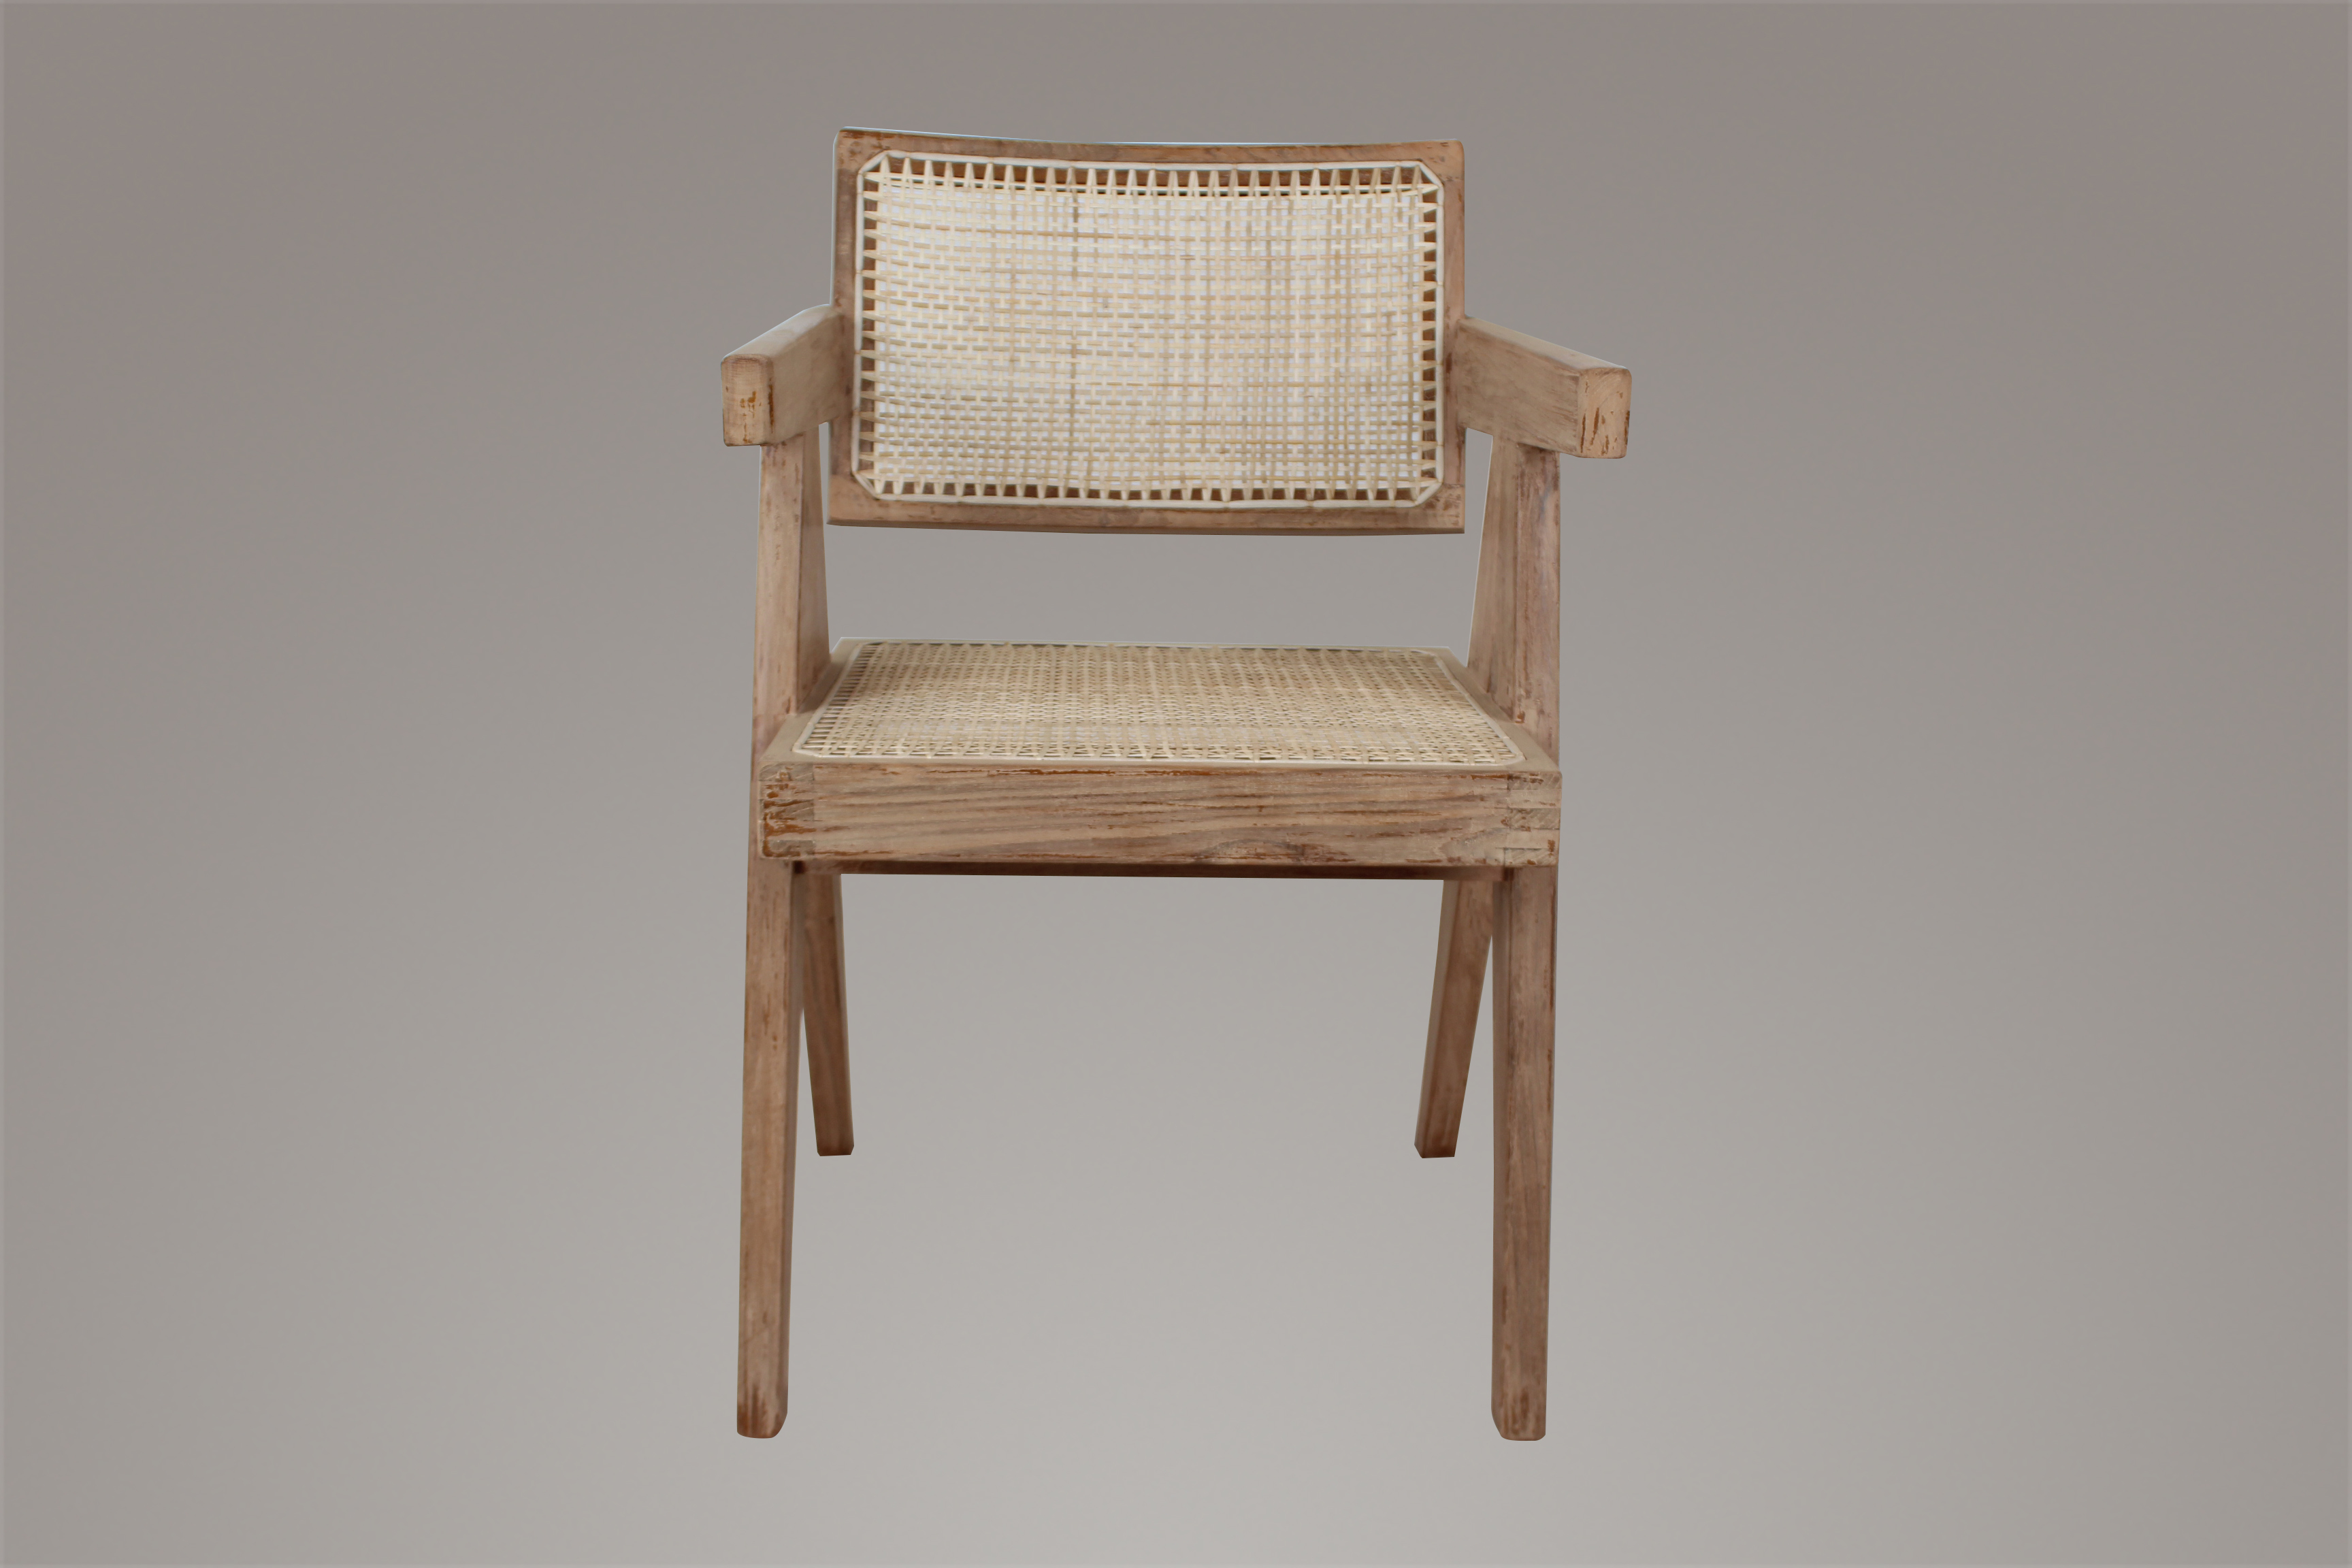 Pierre Jeanneret Dining Room Chair in Weather Beaten Finish